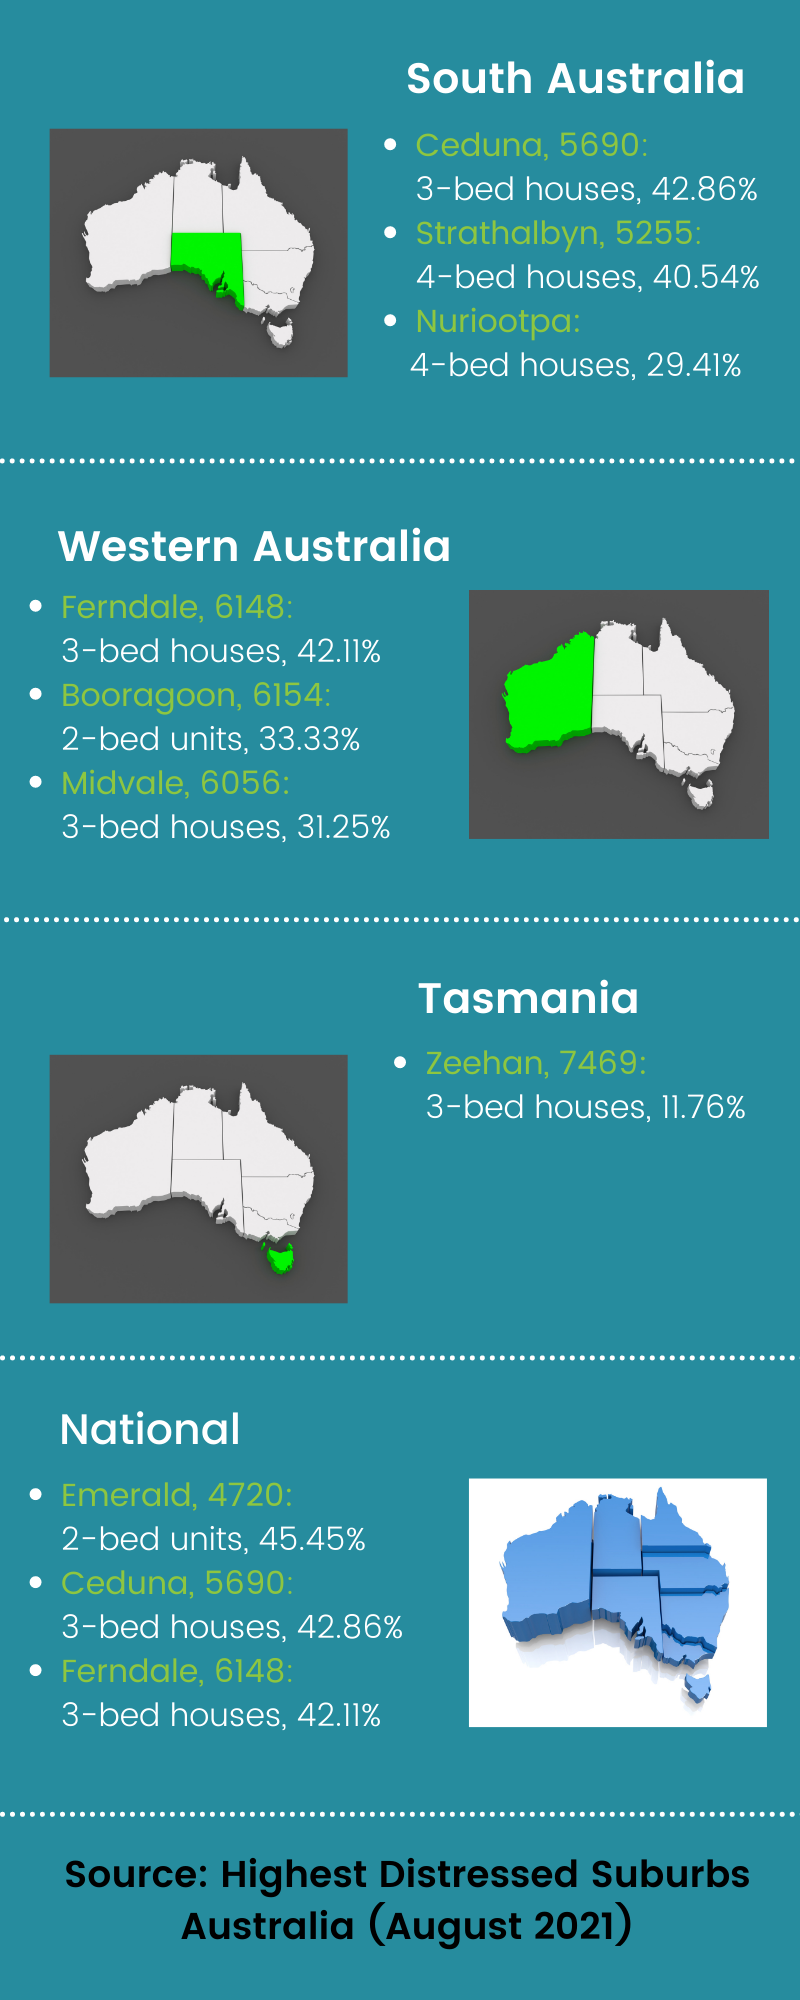 Blog - Australian Suburbs with the most distressed properties for sale